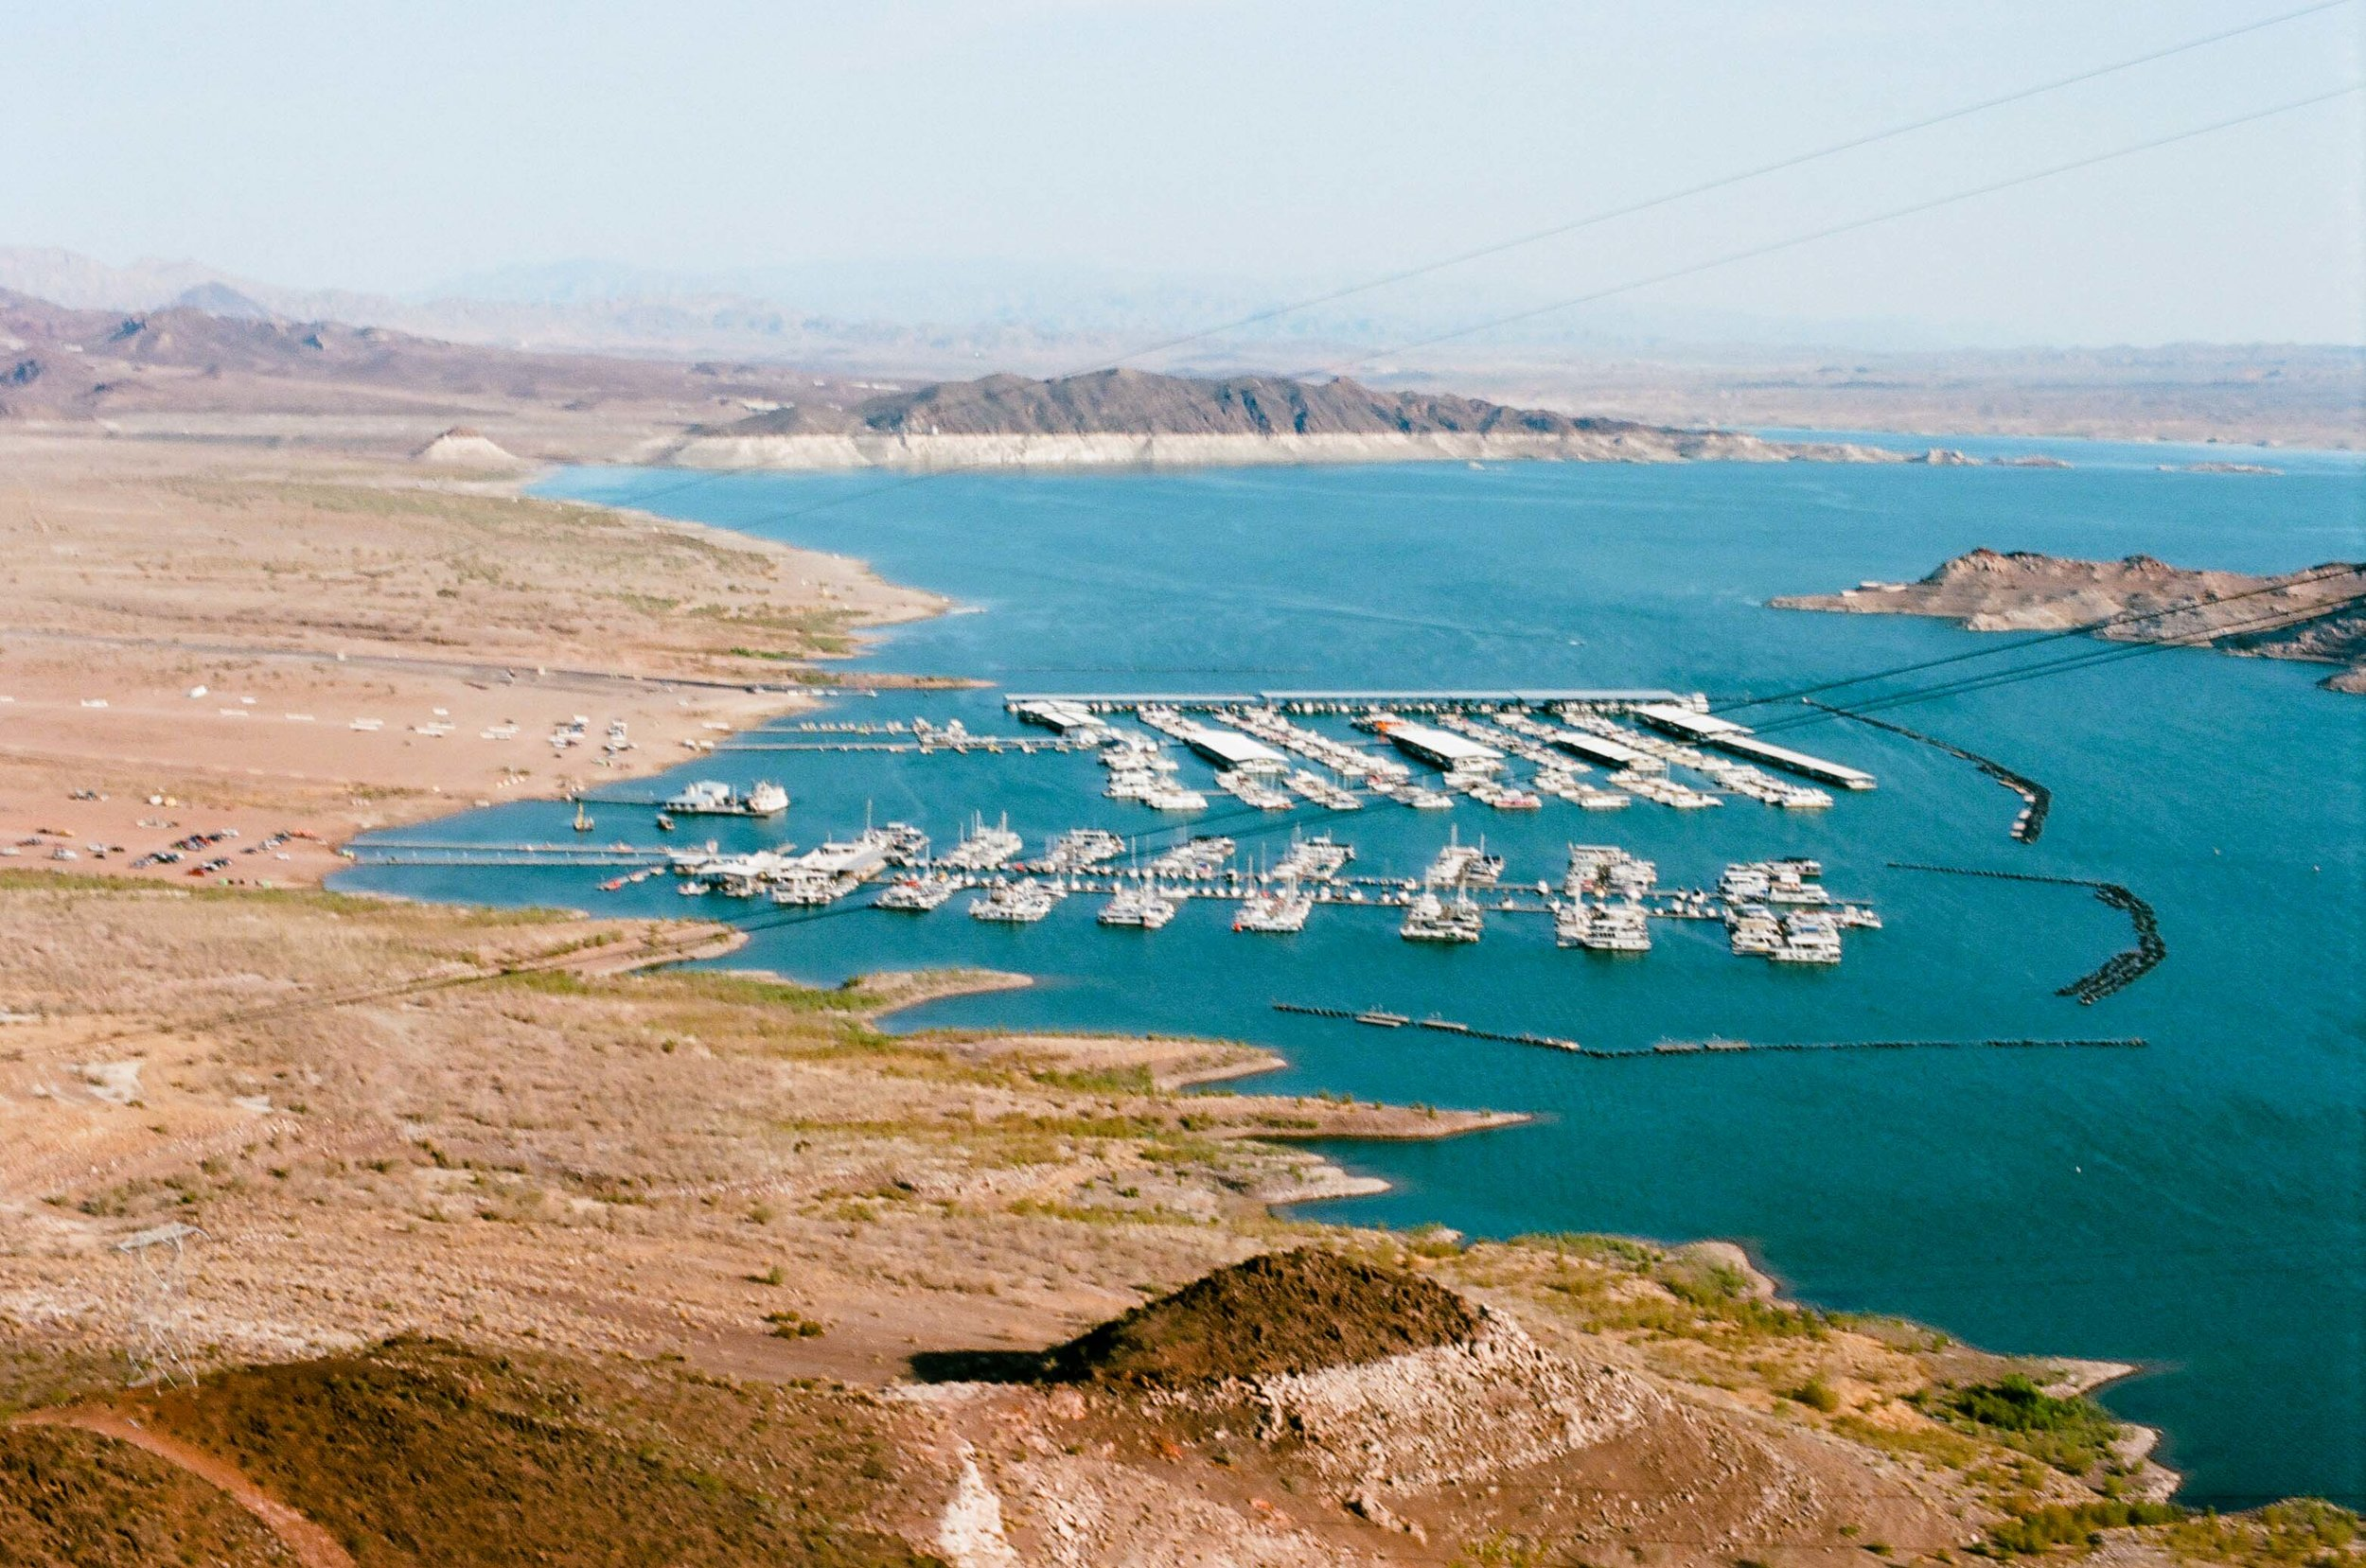 The Las Vegas Boat Harbor and Lake Mead Marina which were both relocated from other areas of Lake Mead due to decreasing water levels